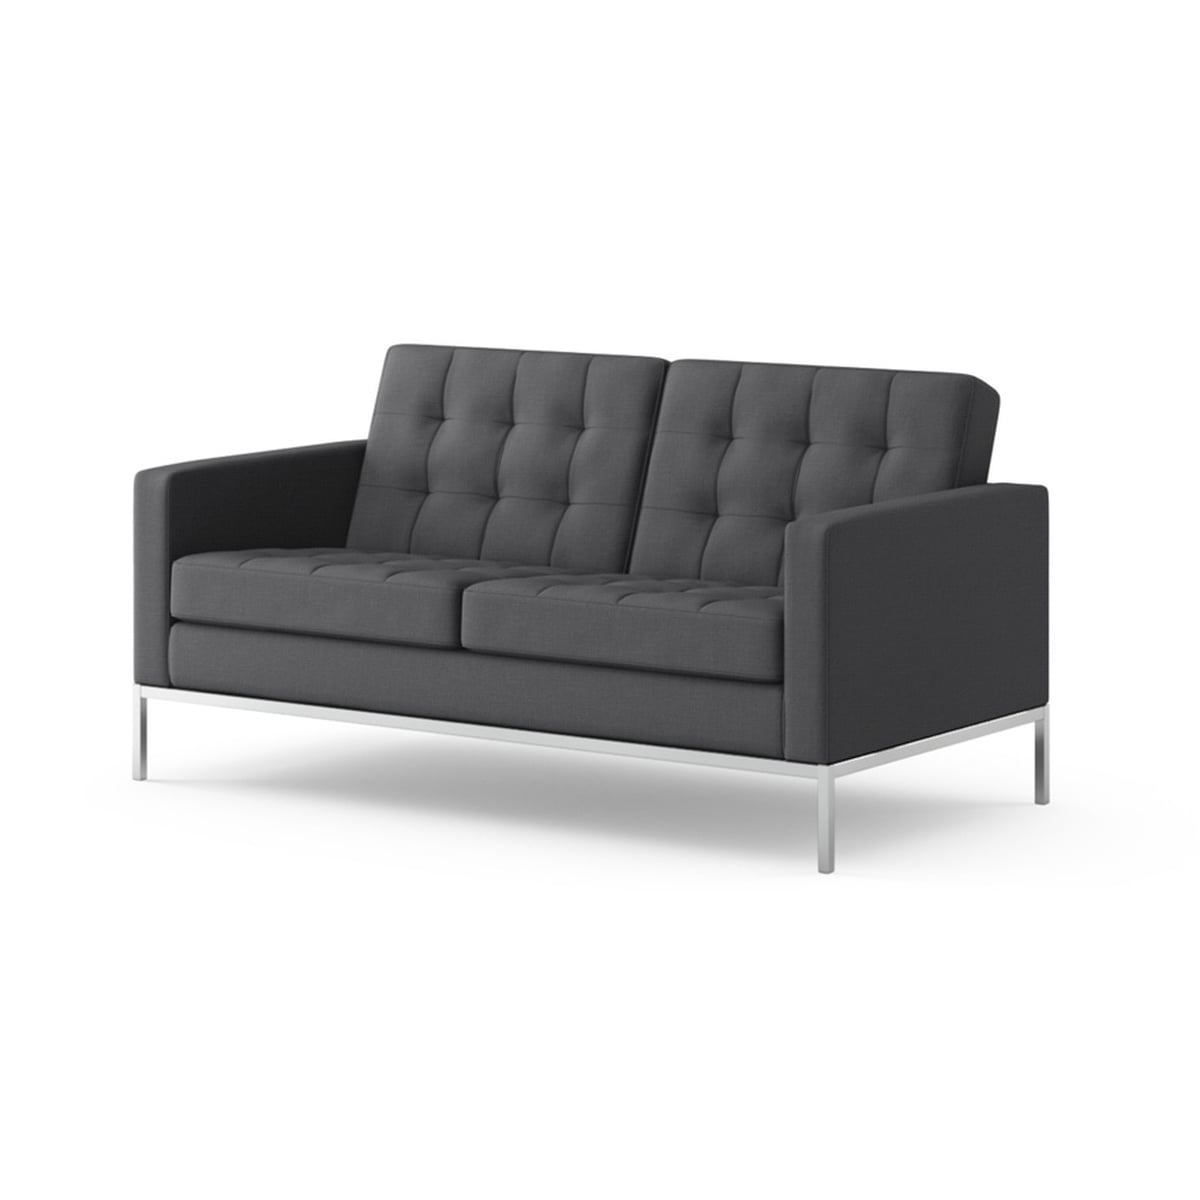 Widely Used Florence Sofas And Loveseats With Regard To Knoll Florence 2 Seats Sofa In The Shop (View 8 of 20)